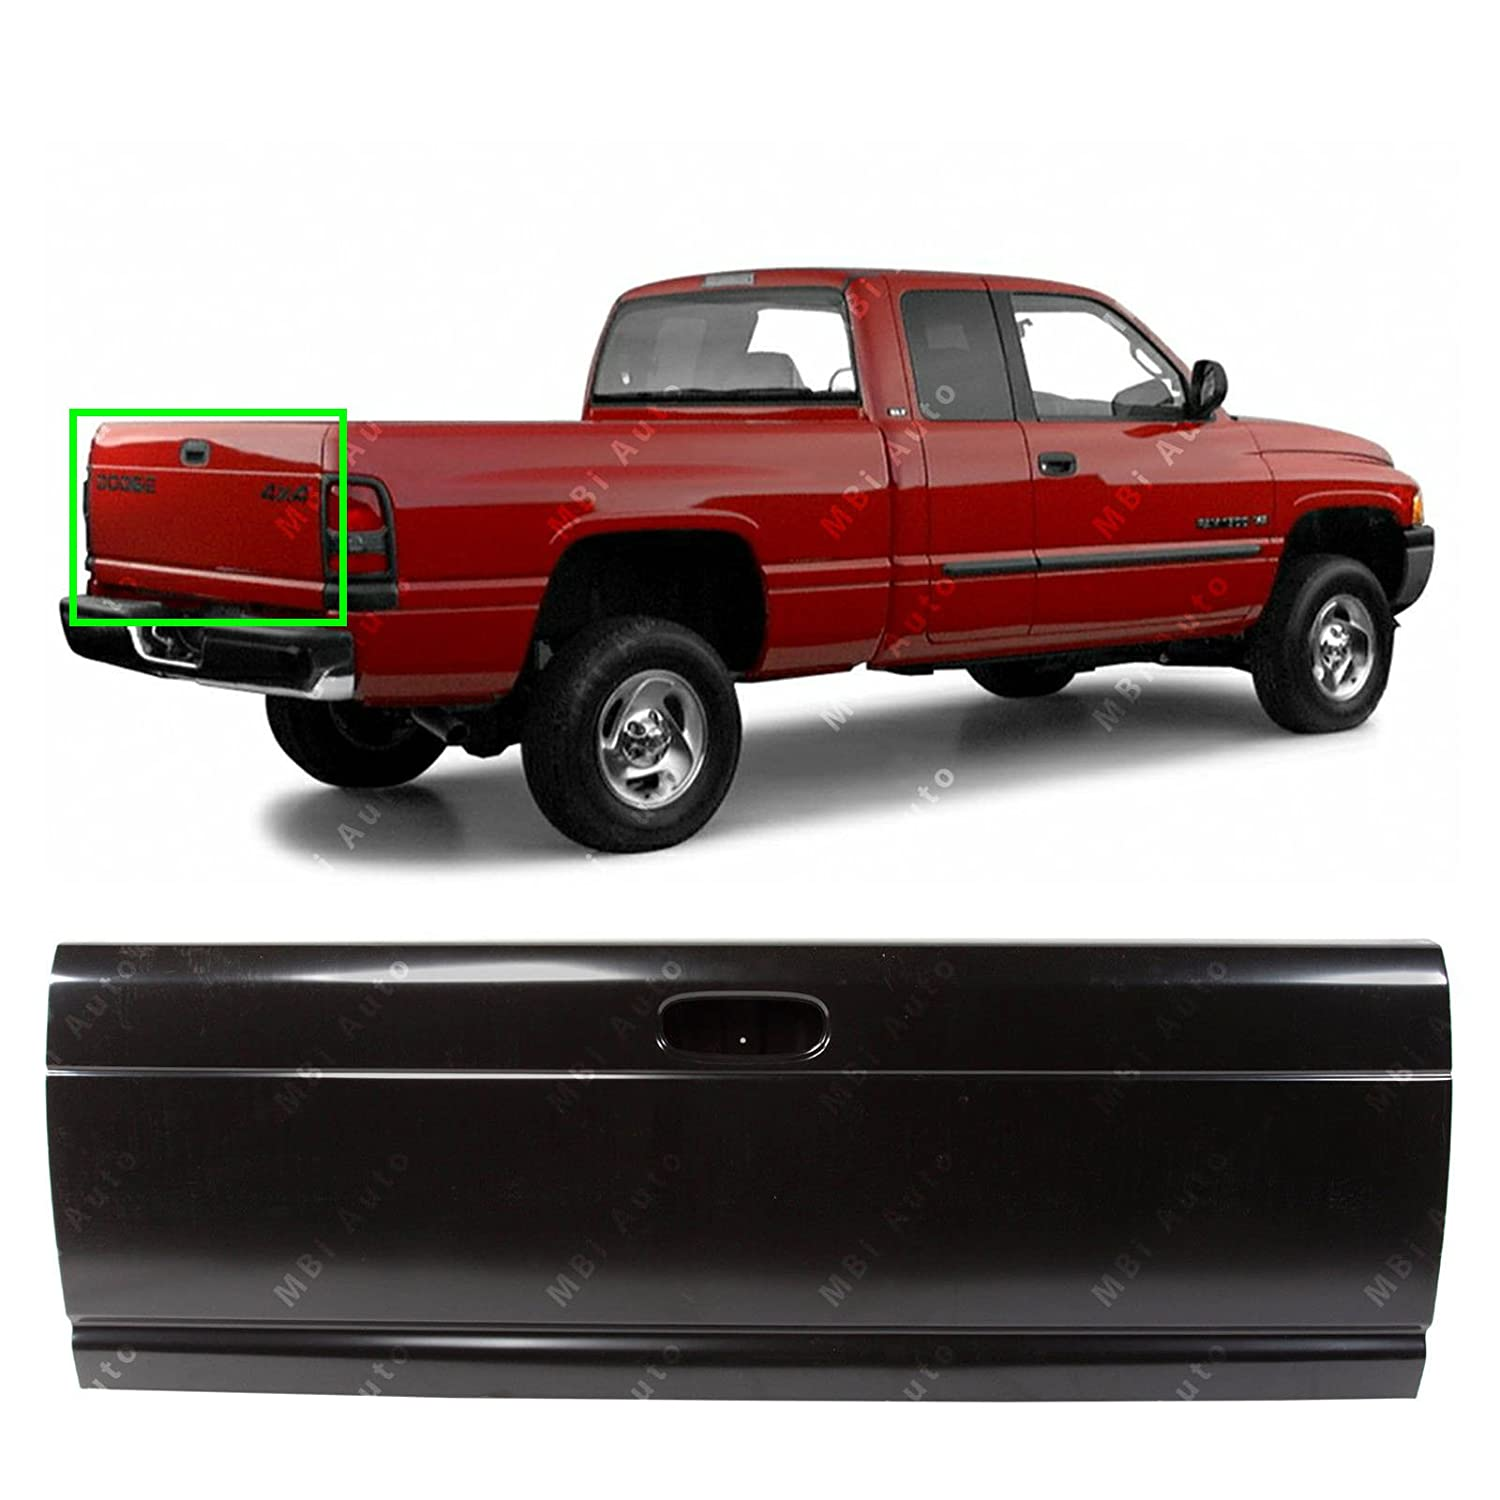 MBI AUTO - Primered Steel, Tailgate Shell for 1994-2002 Dodge RAM 1500 2500 3500 Pickup, CH1900112